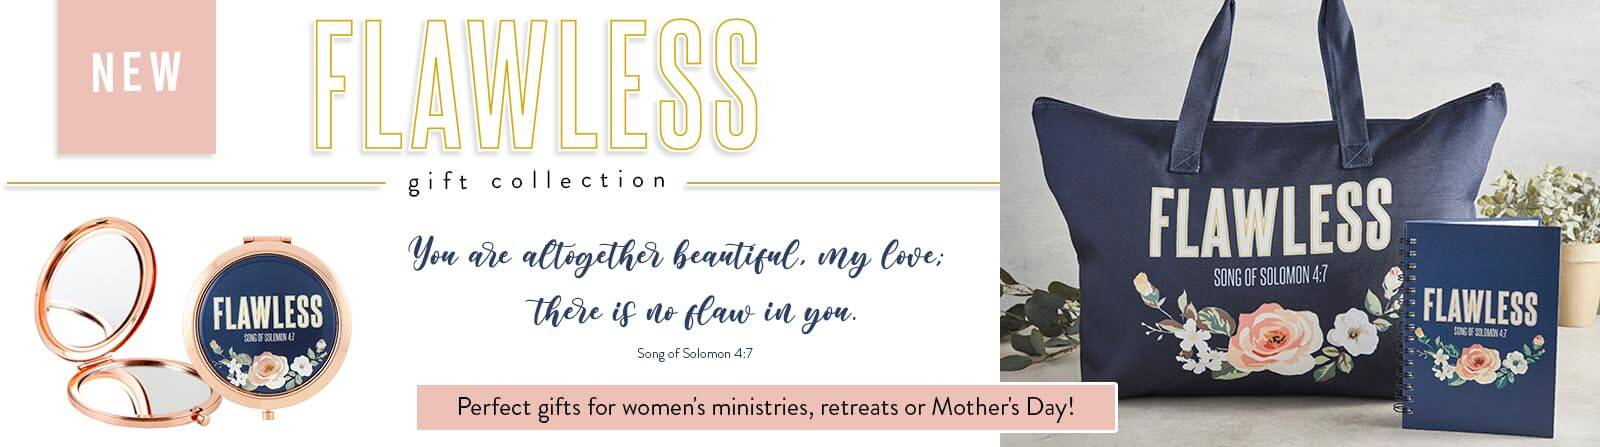 New Flawless gift collection. You are altogether beautiful, my love. There is no flaw in you. - Song of Solomon 4:7 - Perfect gifts for women's ministries, retreats or Mother's Day!